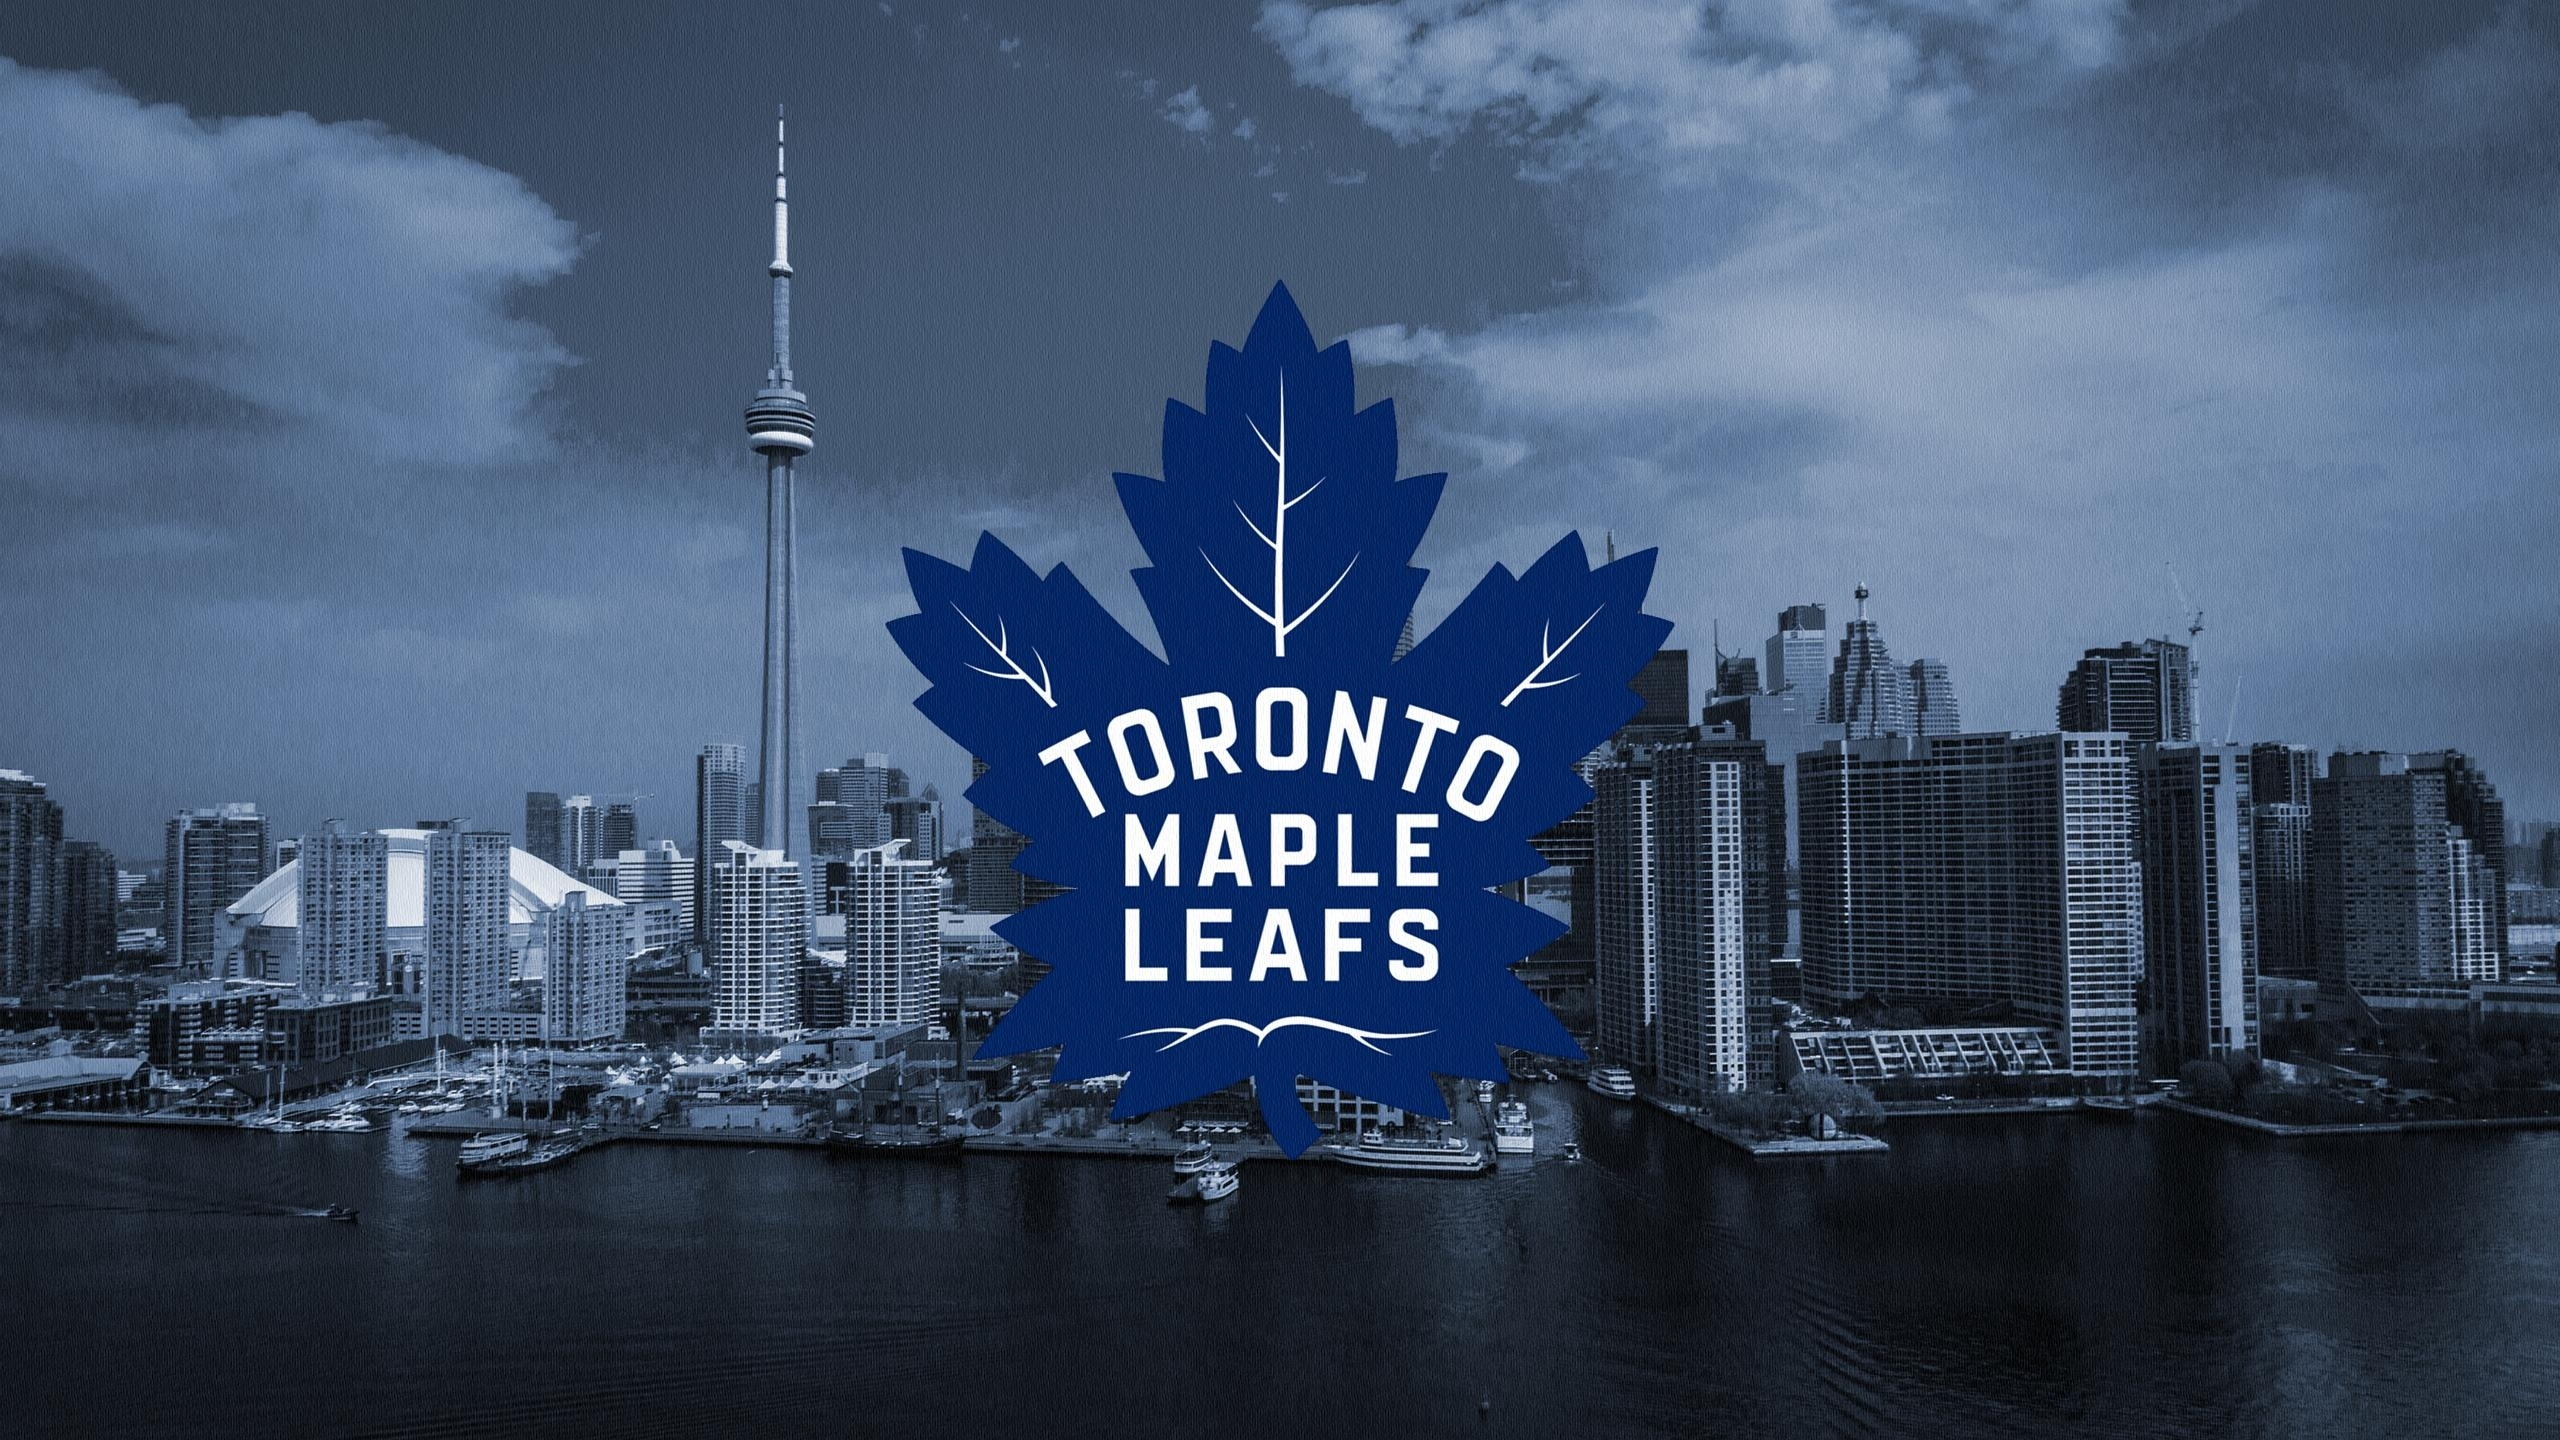 25 toronto maple leafs hd wallpapers | background images - wallpaper